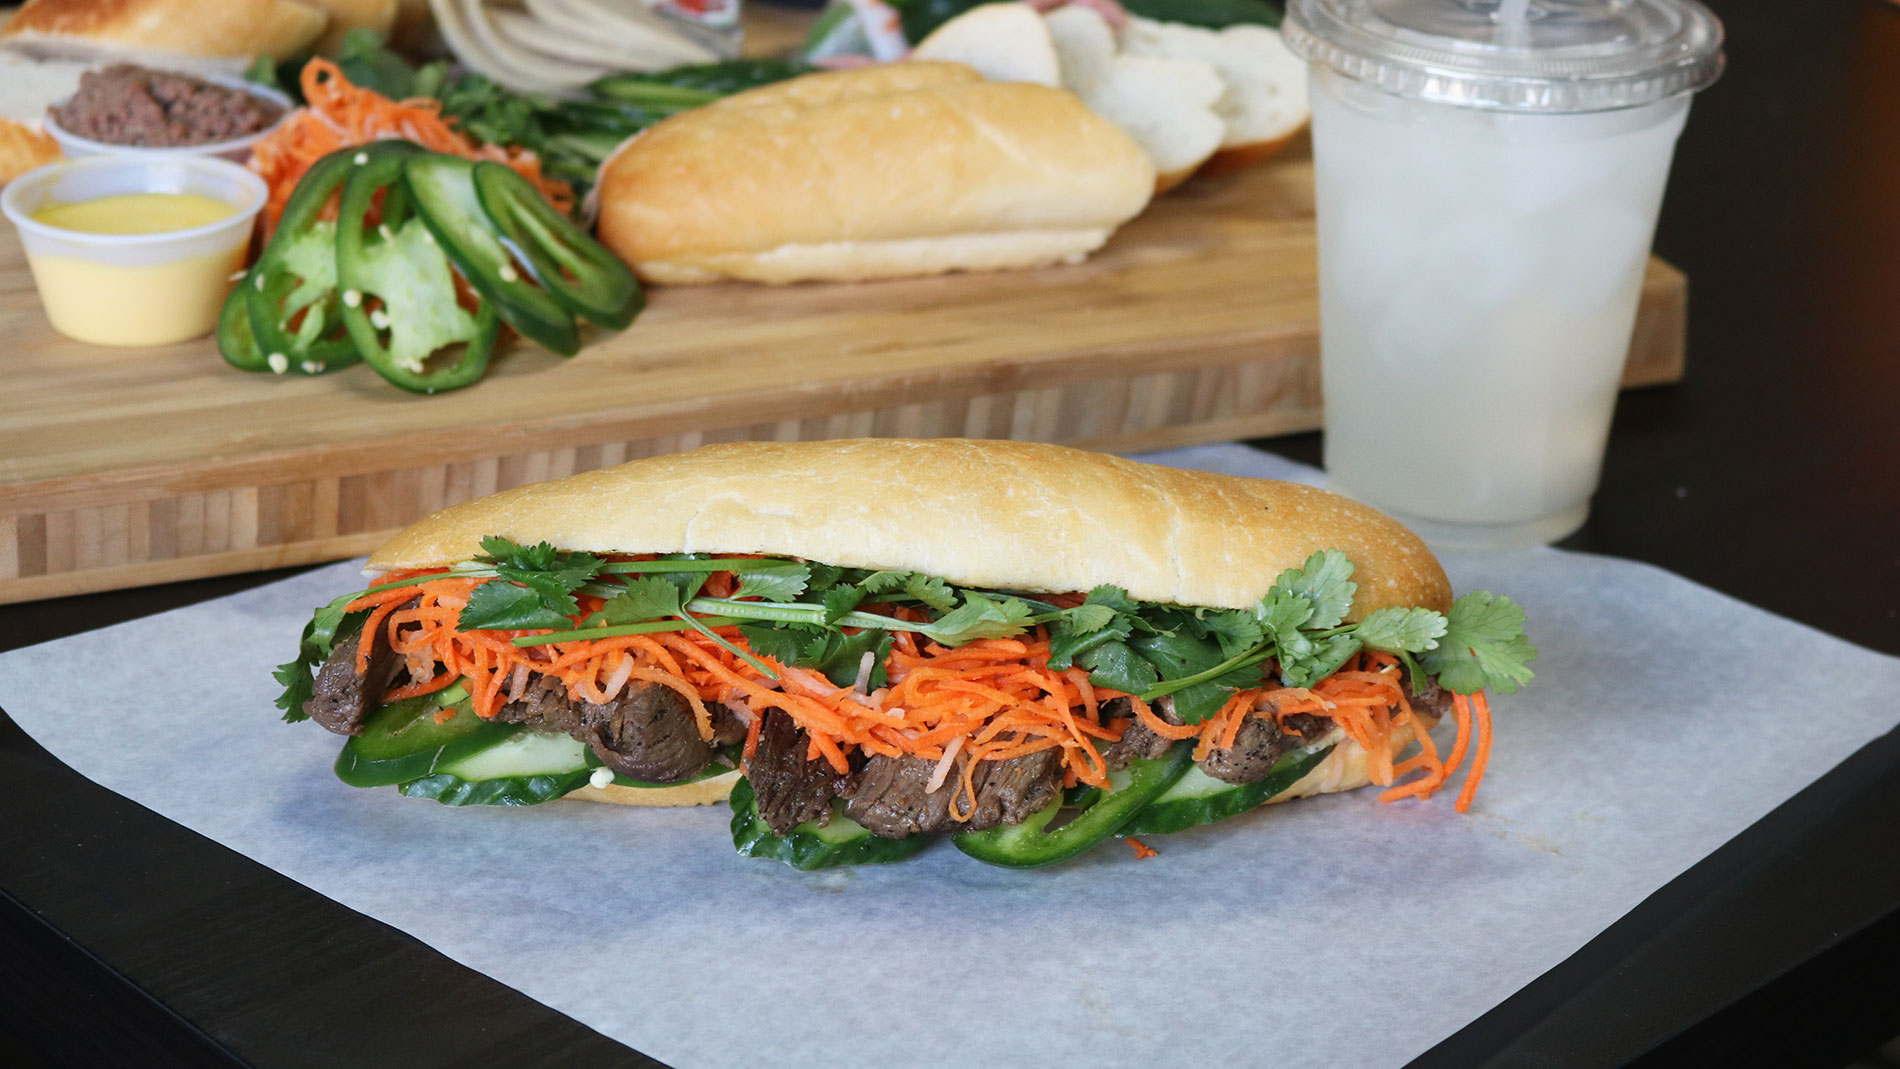 First Look: The Banh Mi Shop in The Loop